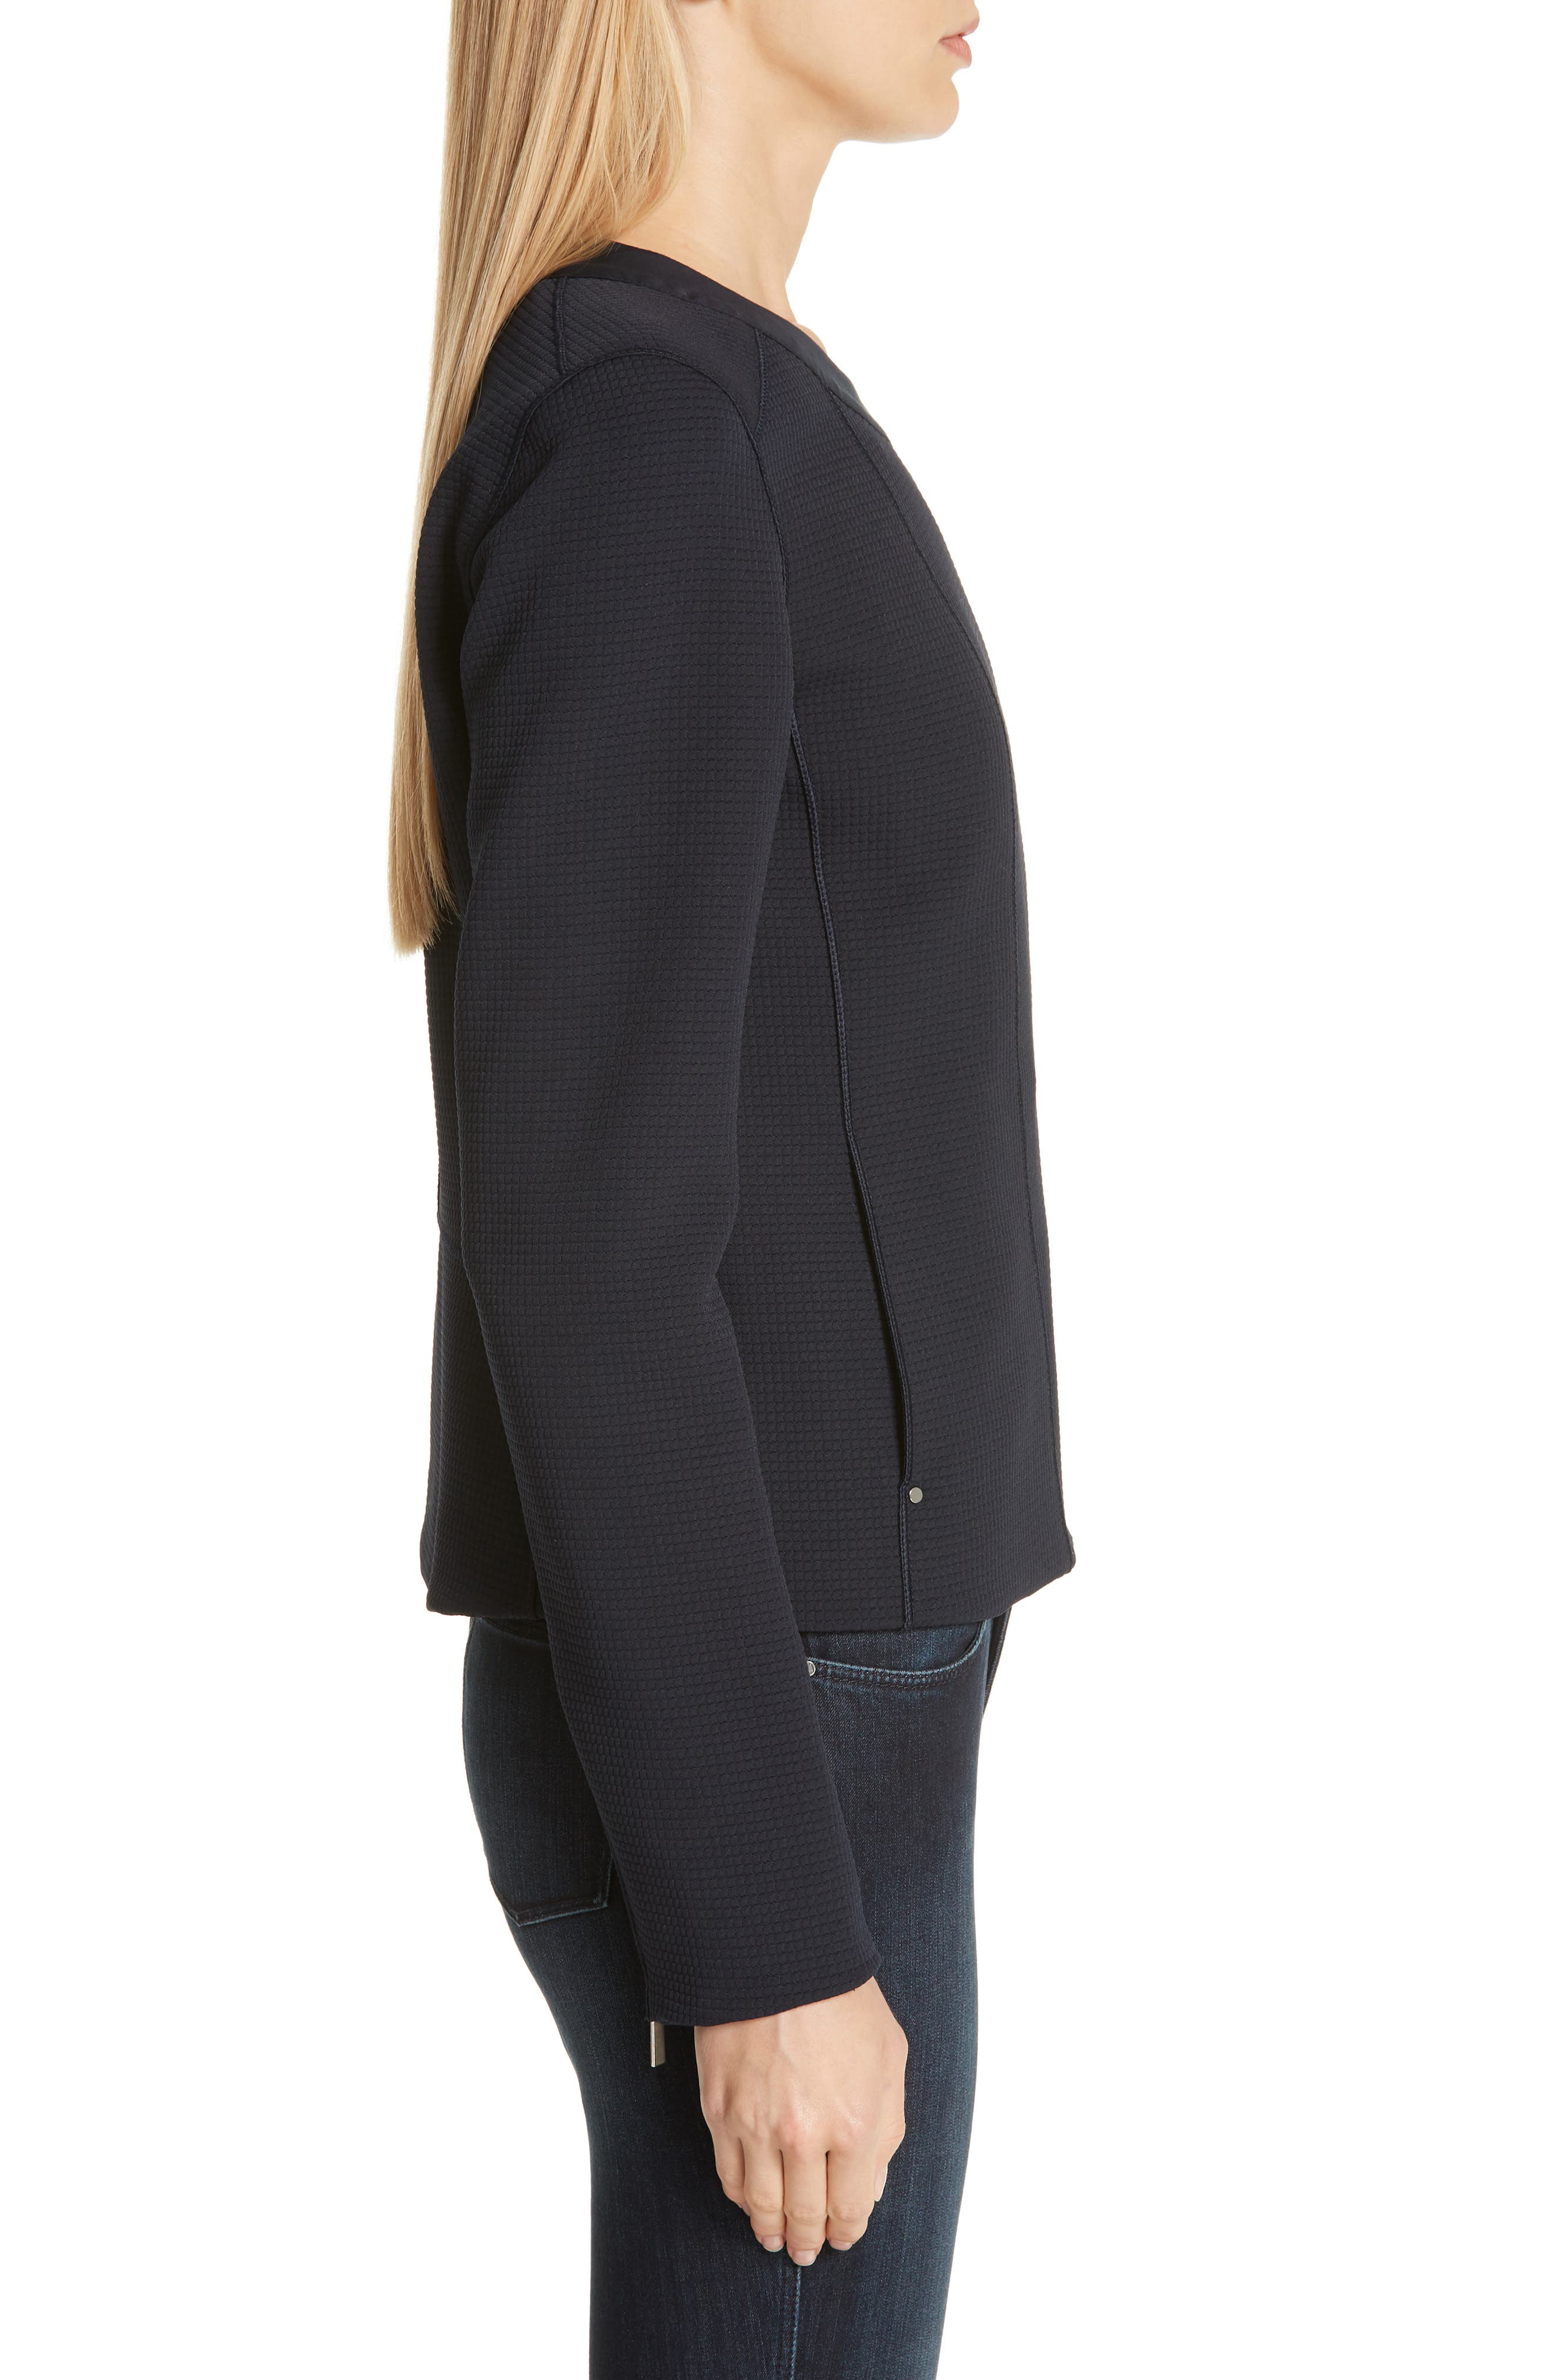 LAFAYETTE 148 NEW YORK, Trista Moto Jacket, Alternate thumbnail 4, color, INK